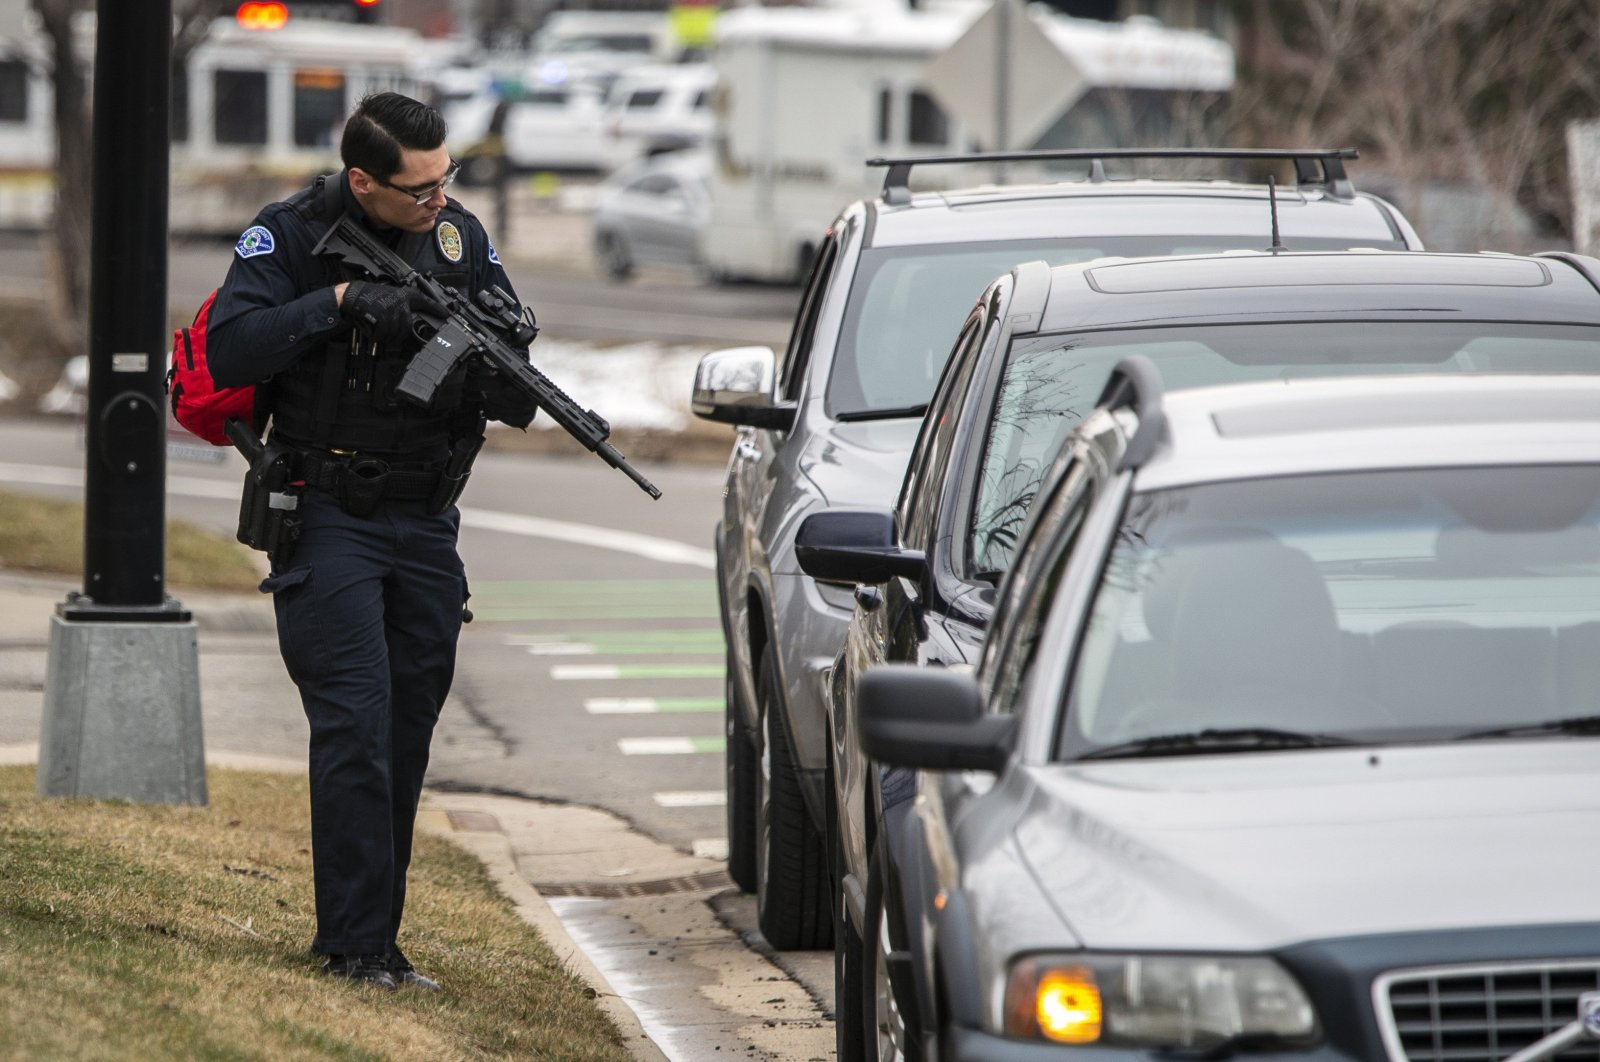 A police officer checks cars in the area after a gunman opened fire at a King Sooper's grocery store on March 22, 2021, in Boulder, Colorado. U.S. (AFP Photo)